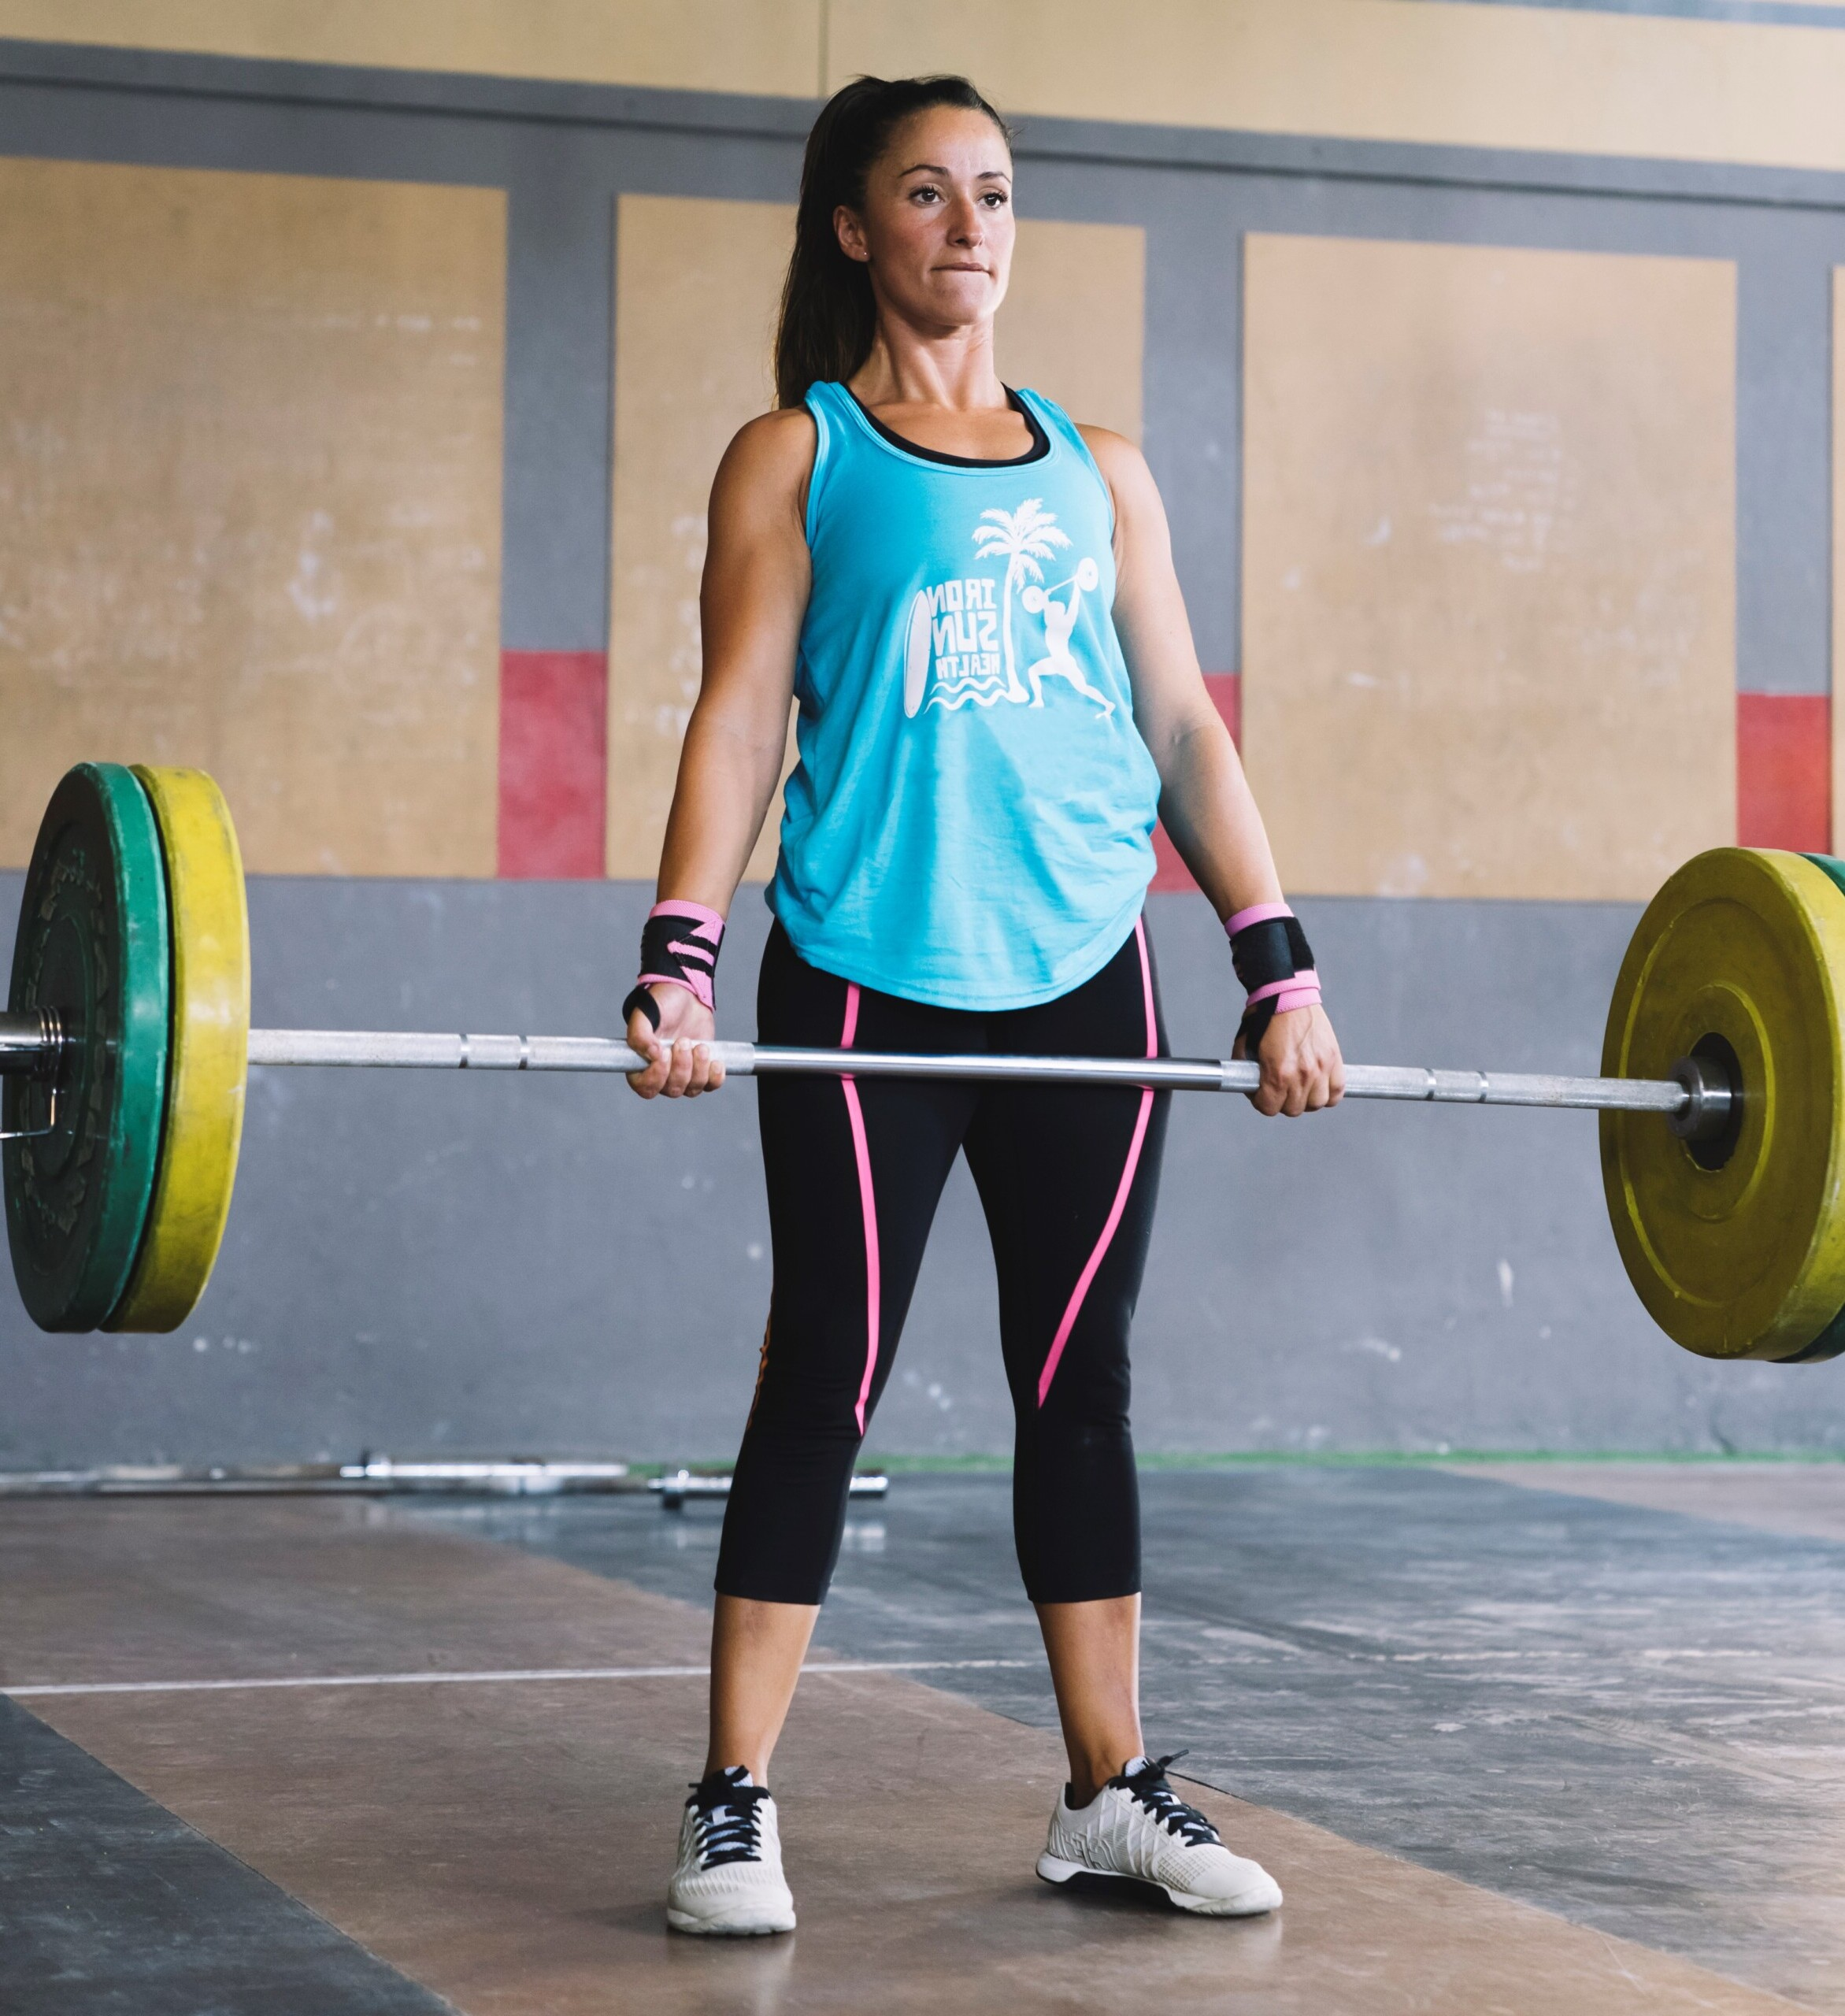 Why Don't Women Grunt Loudly when Lifting Heavy Weights?